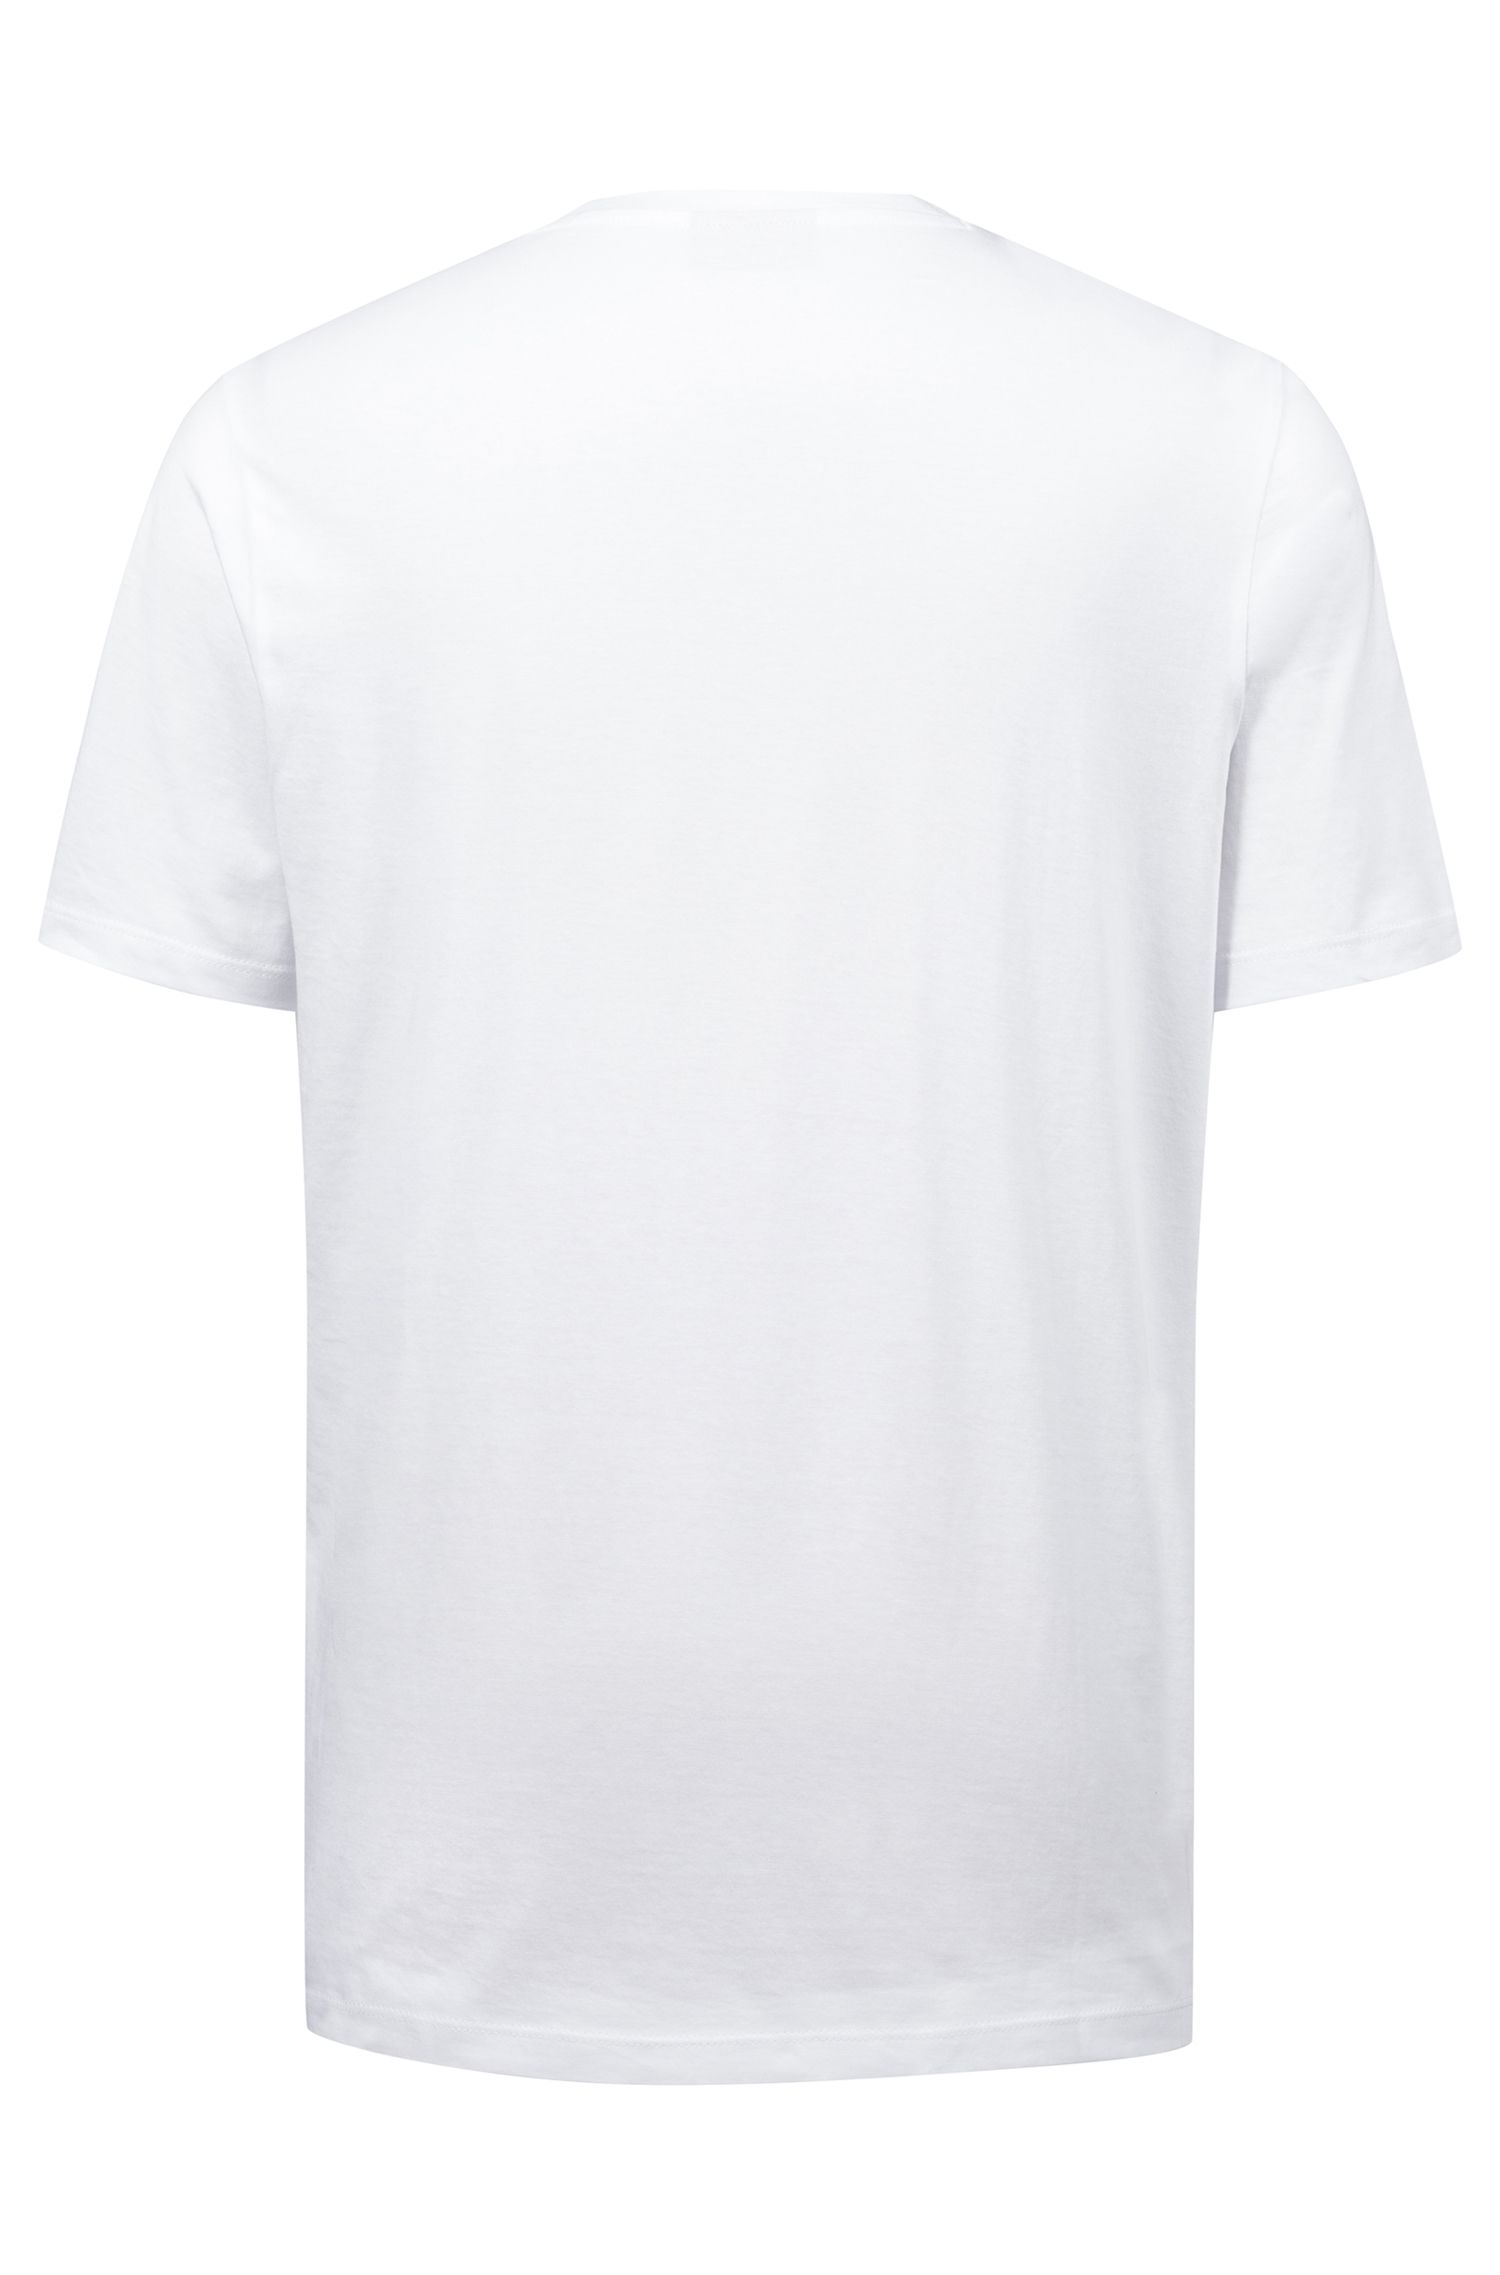 Relaxed-fit logo T-shirt in cotton jersey, White